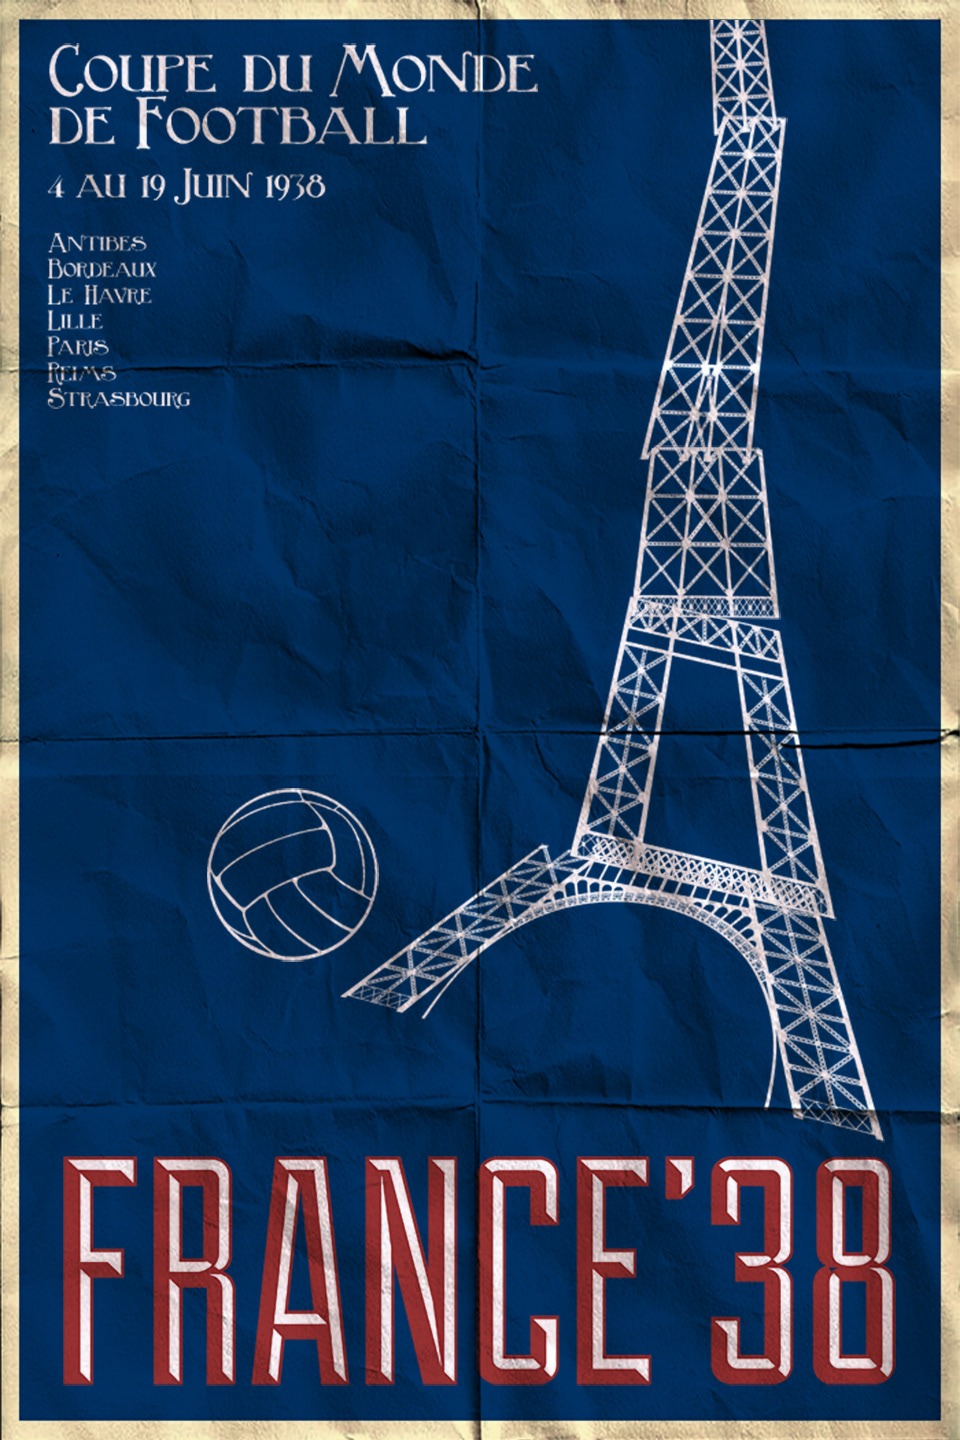 world cup Brasil 2014 world cupposters posters Sport Posters